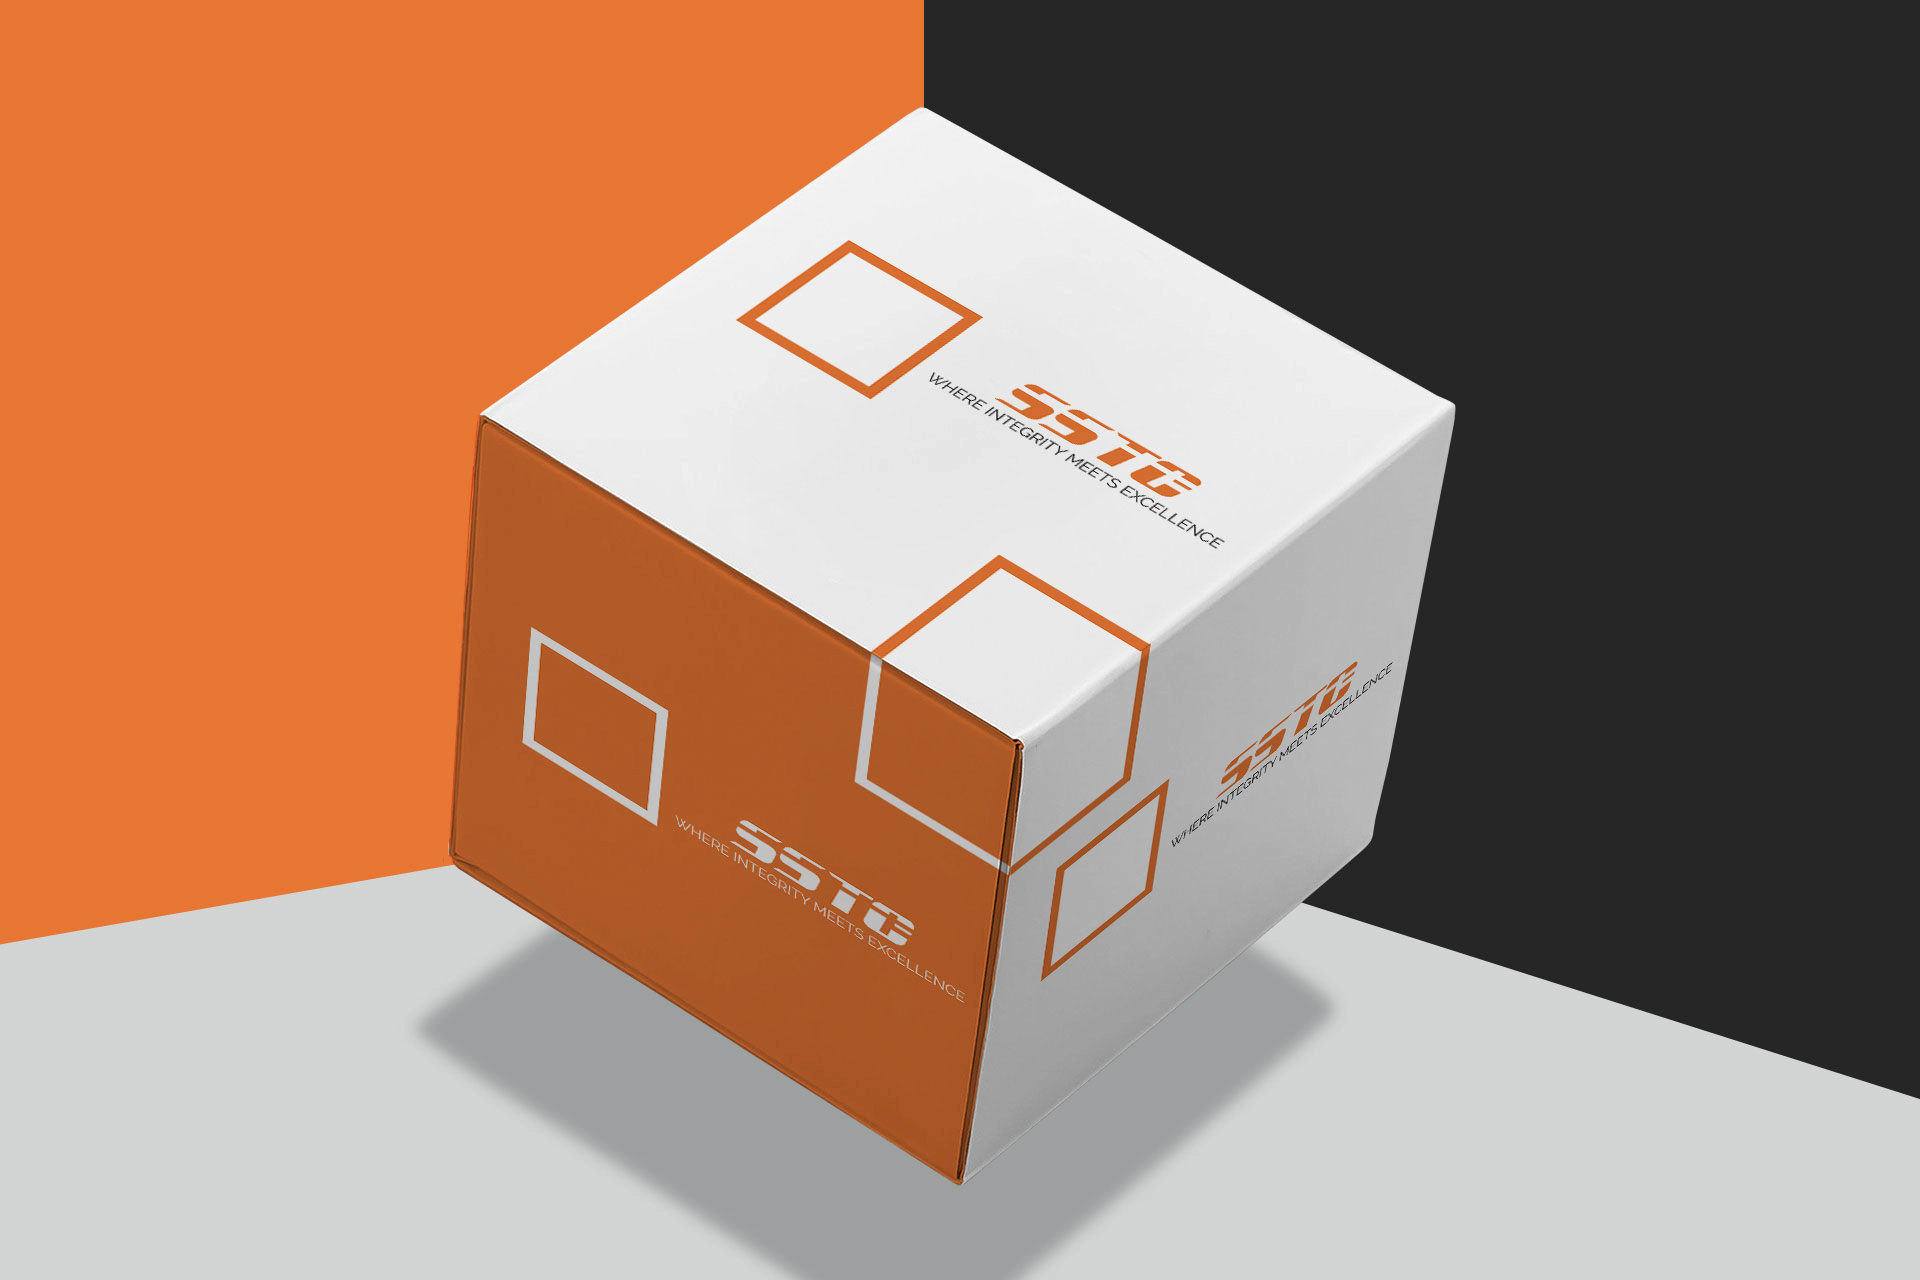 Cubic shape. SSTC. White & Orange Squares. Dynamic approach. Abstract Logo design. Unique branding. Get Solutions